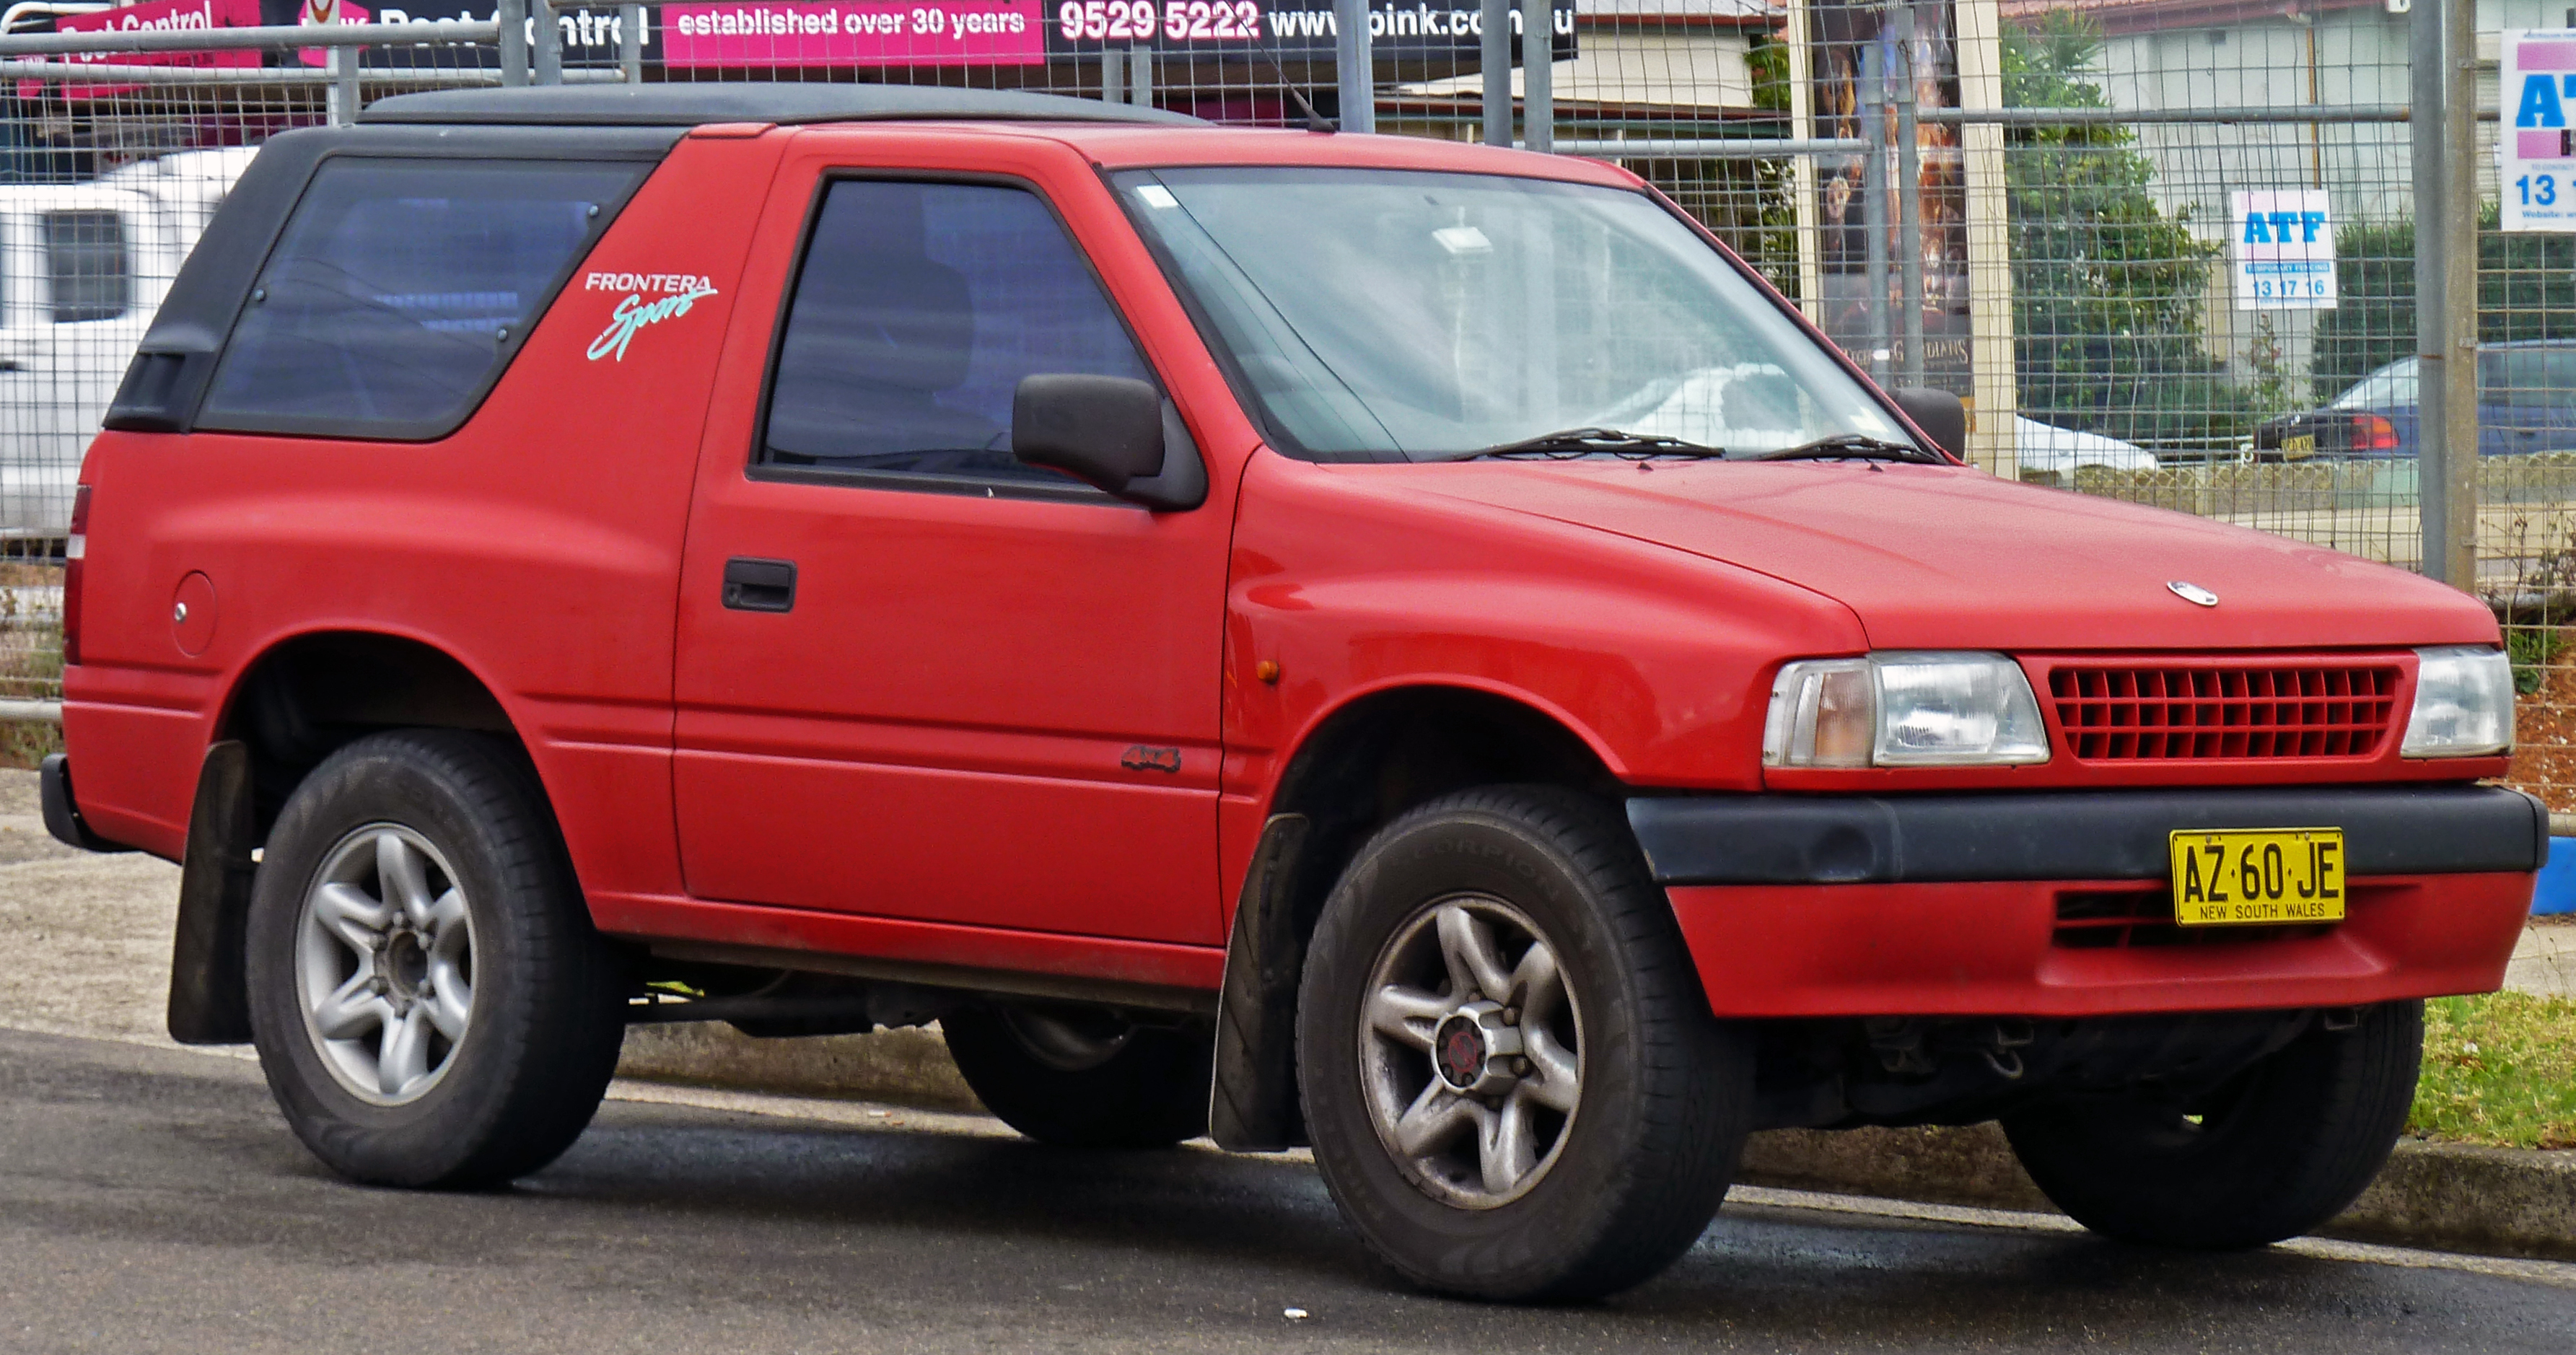 2000 isuzu amigo information and photos zombiedrive